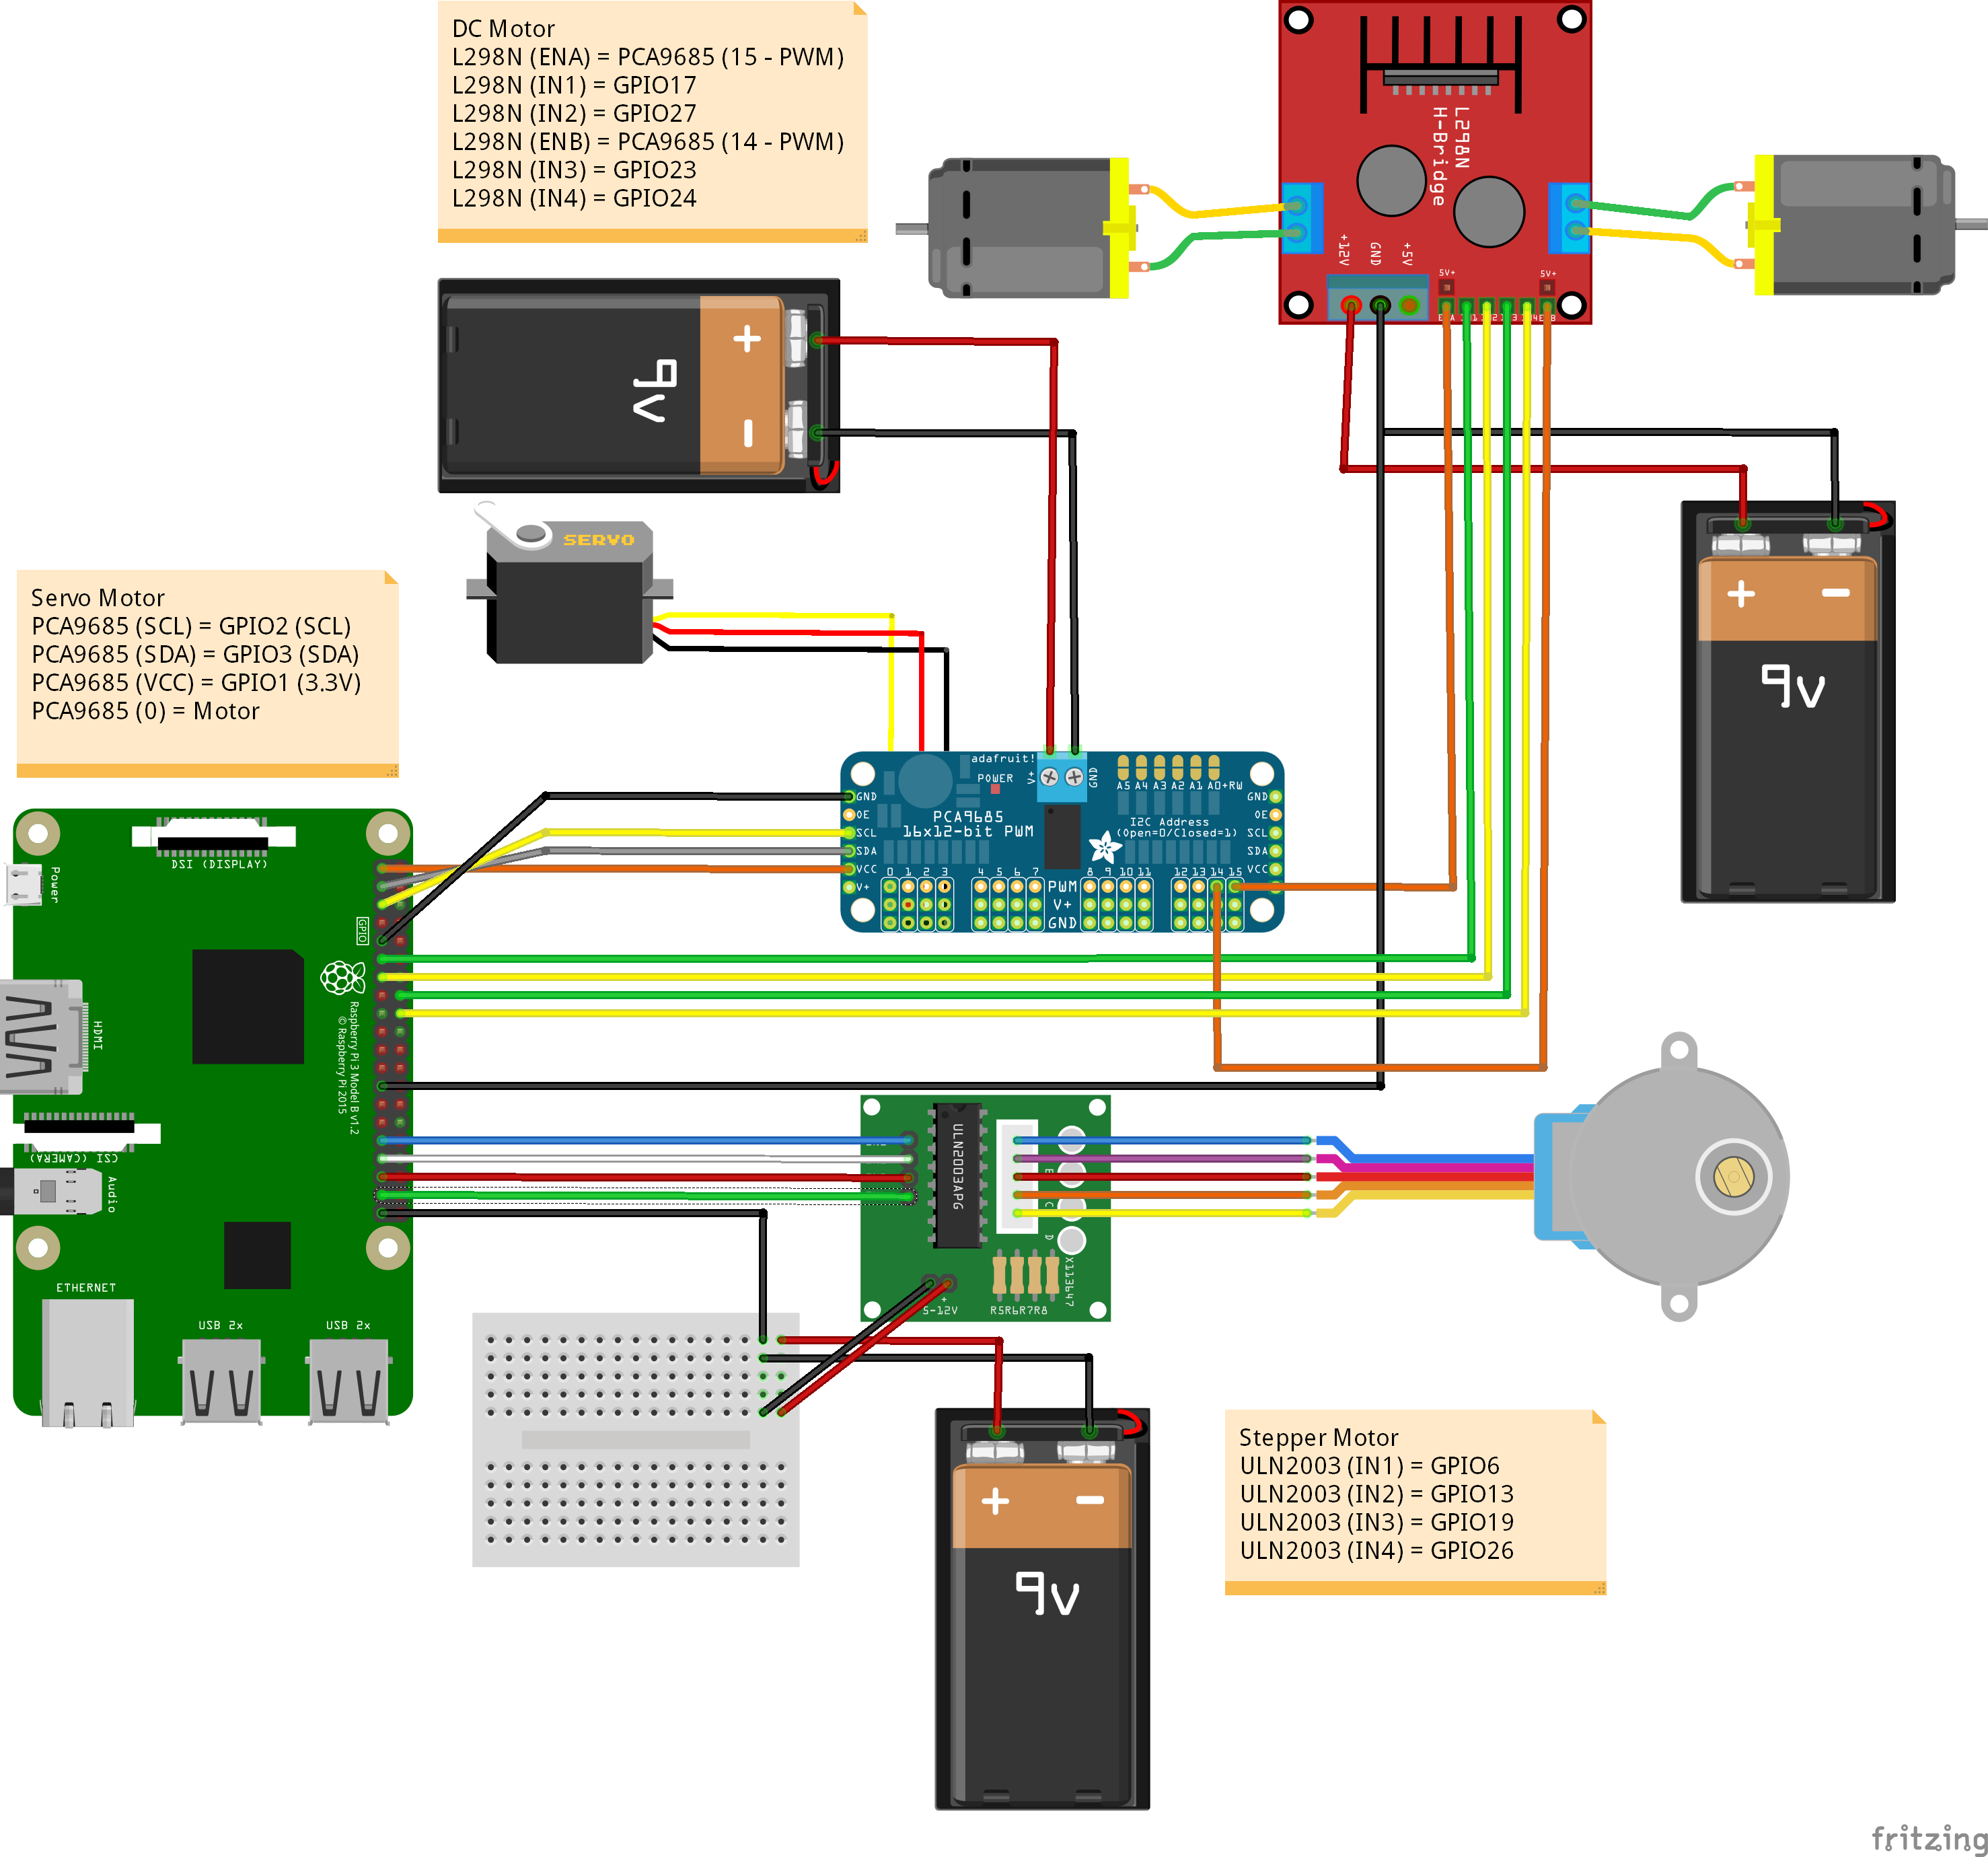 Windows Iot Stepper Servo And Dc Motors Motor Wiring Diagram Free Download Schematic 6y4ym2lbgn